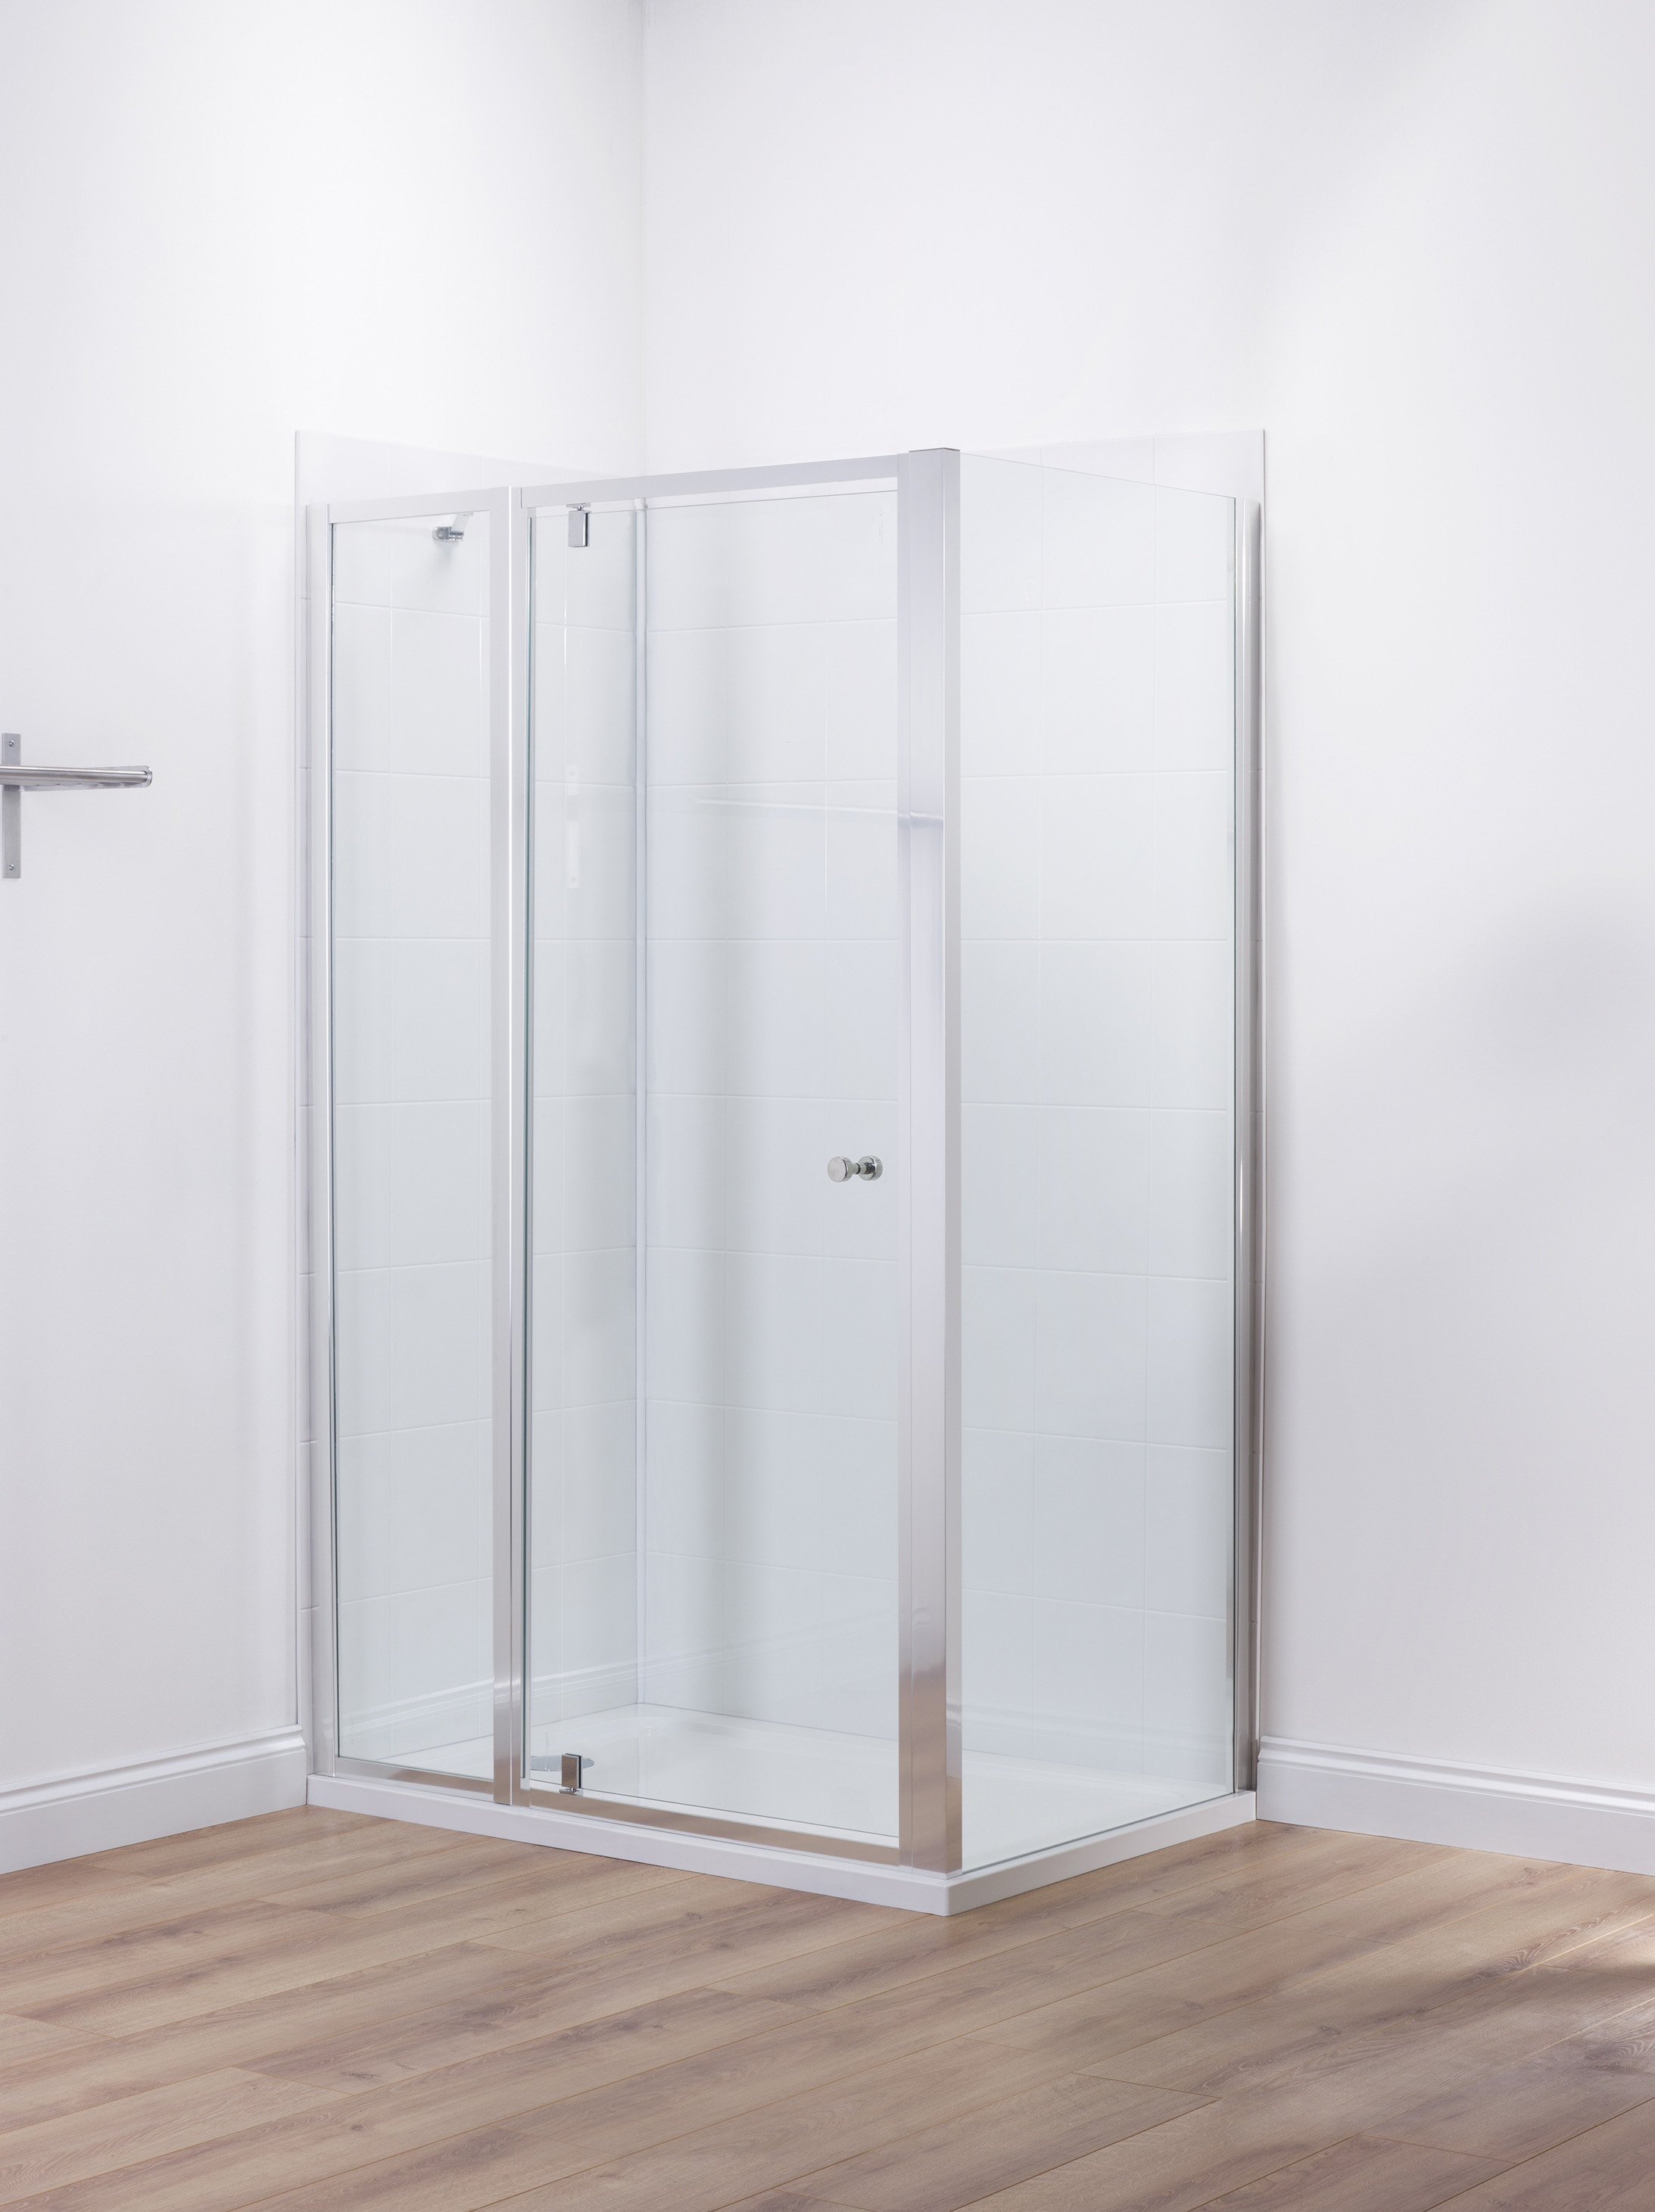 Mira Elevate Shower Enclosures By Mira Showers By Mira Showers